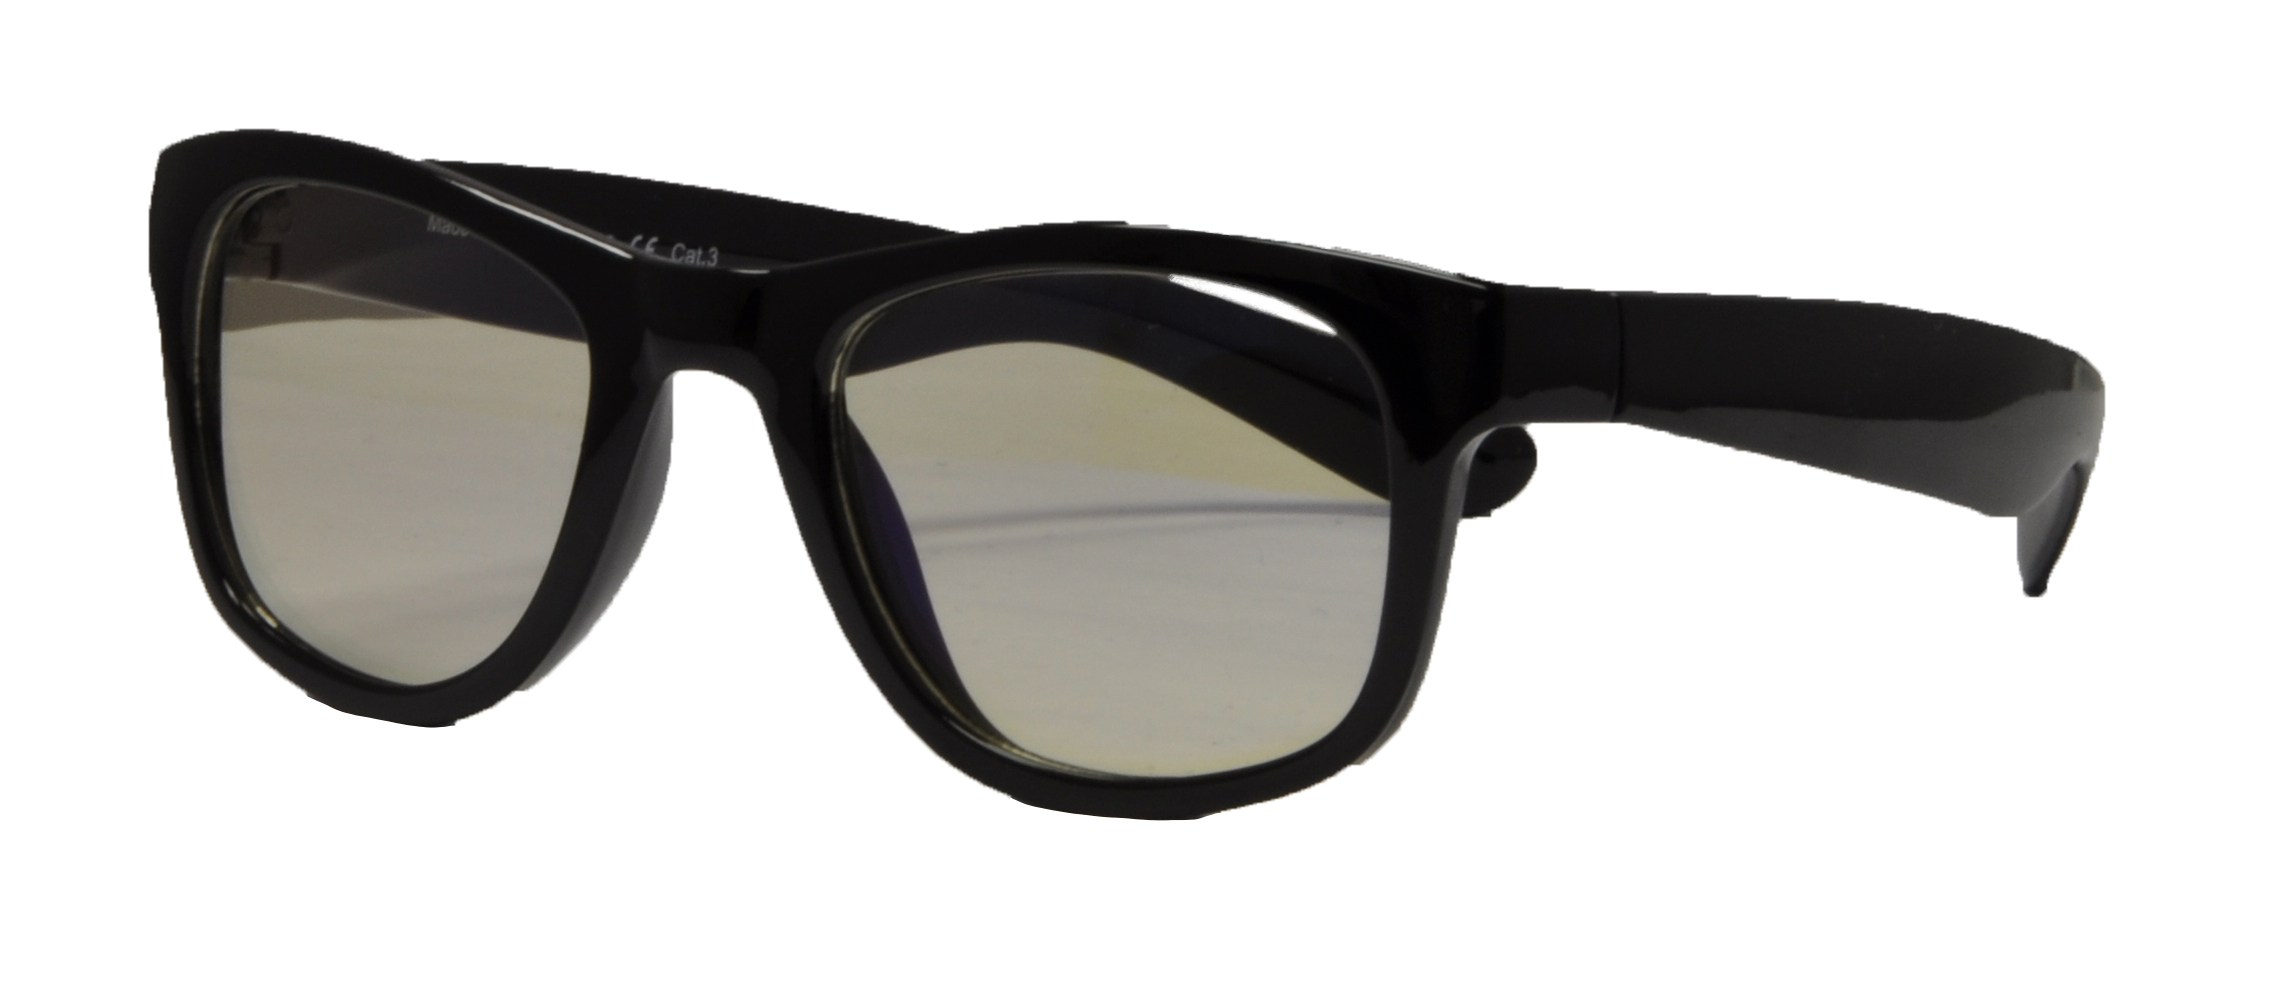 SCREEN SHADES BLACK SIZE ADULT